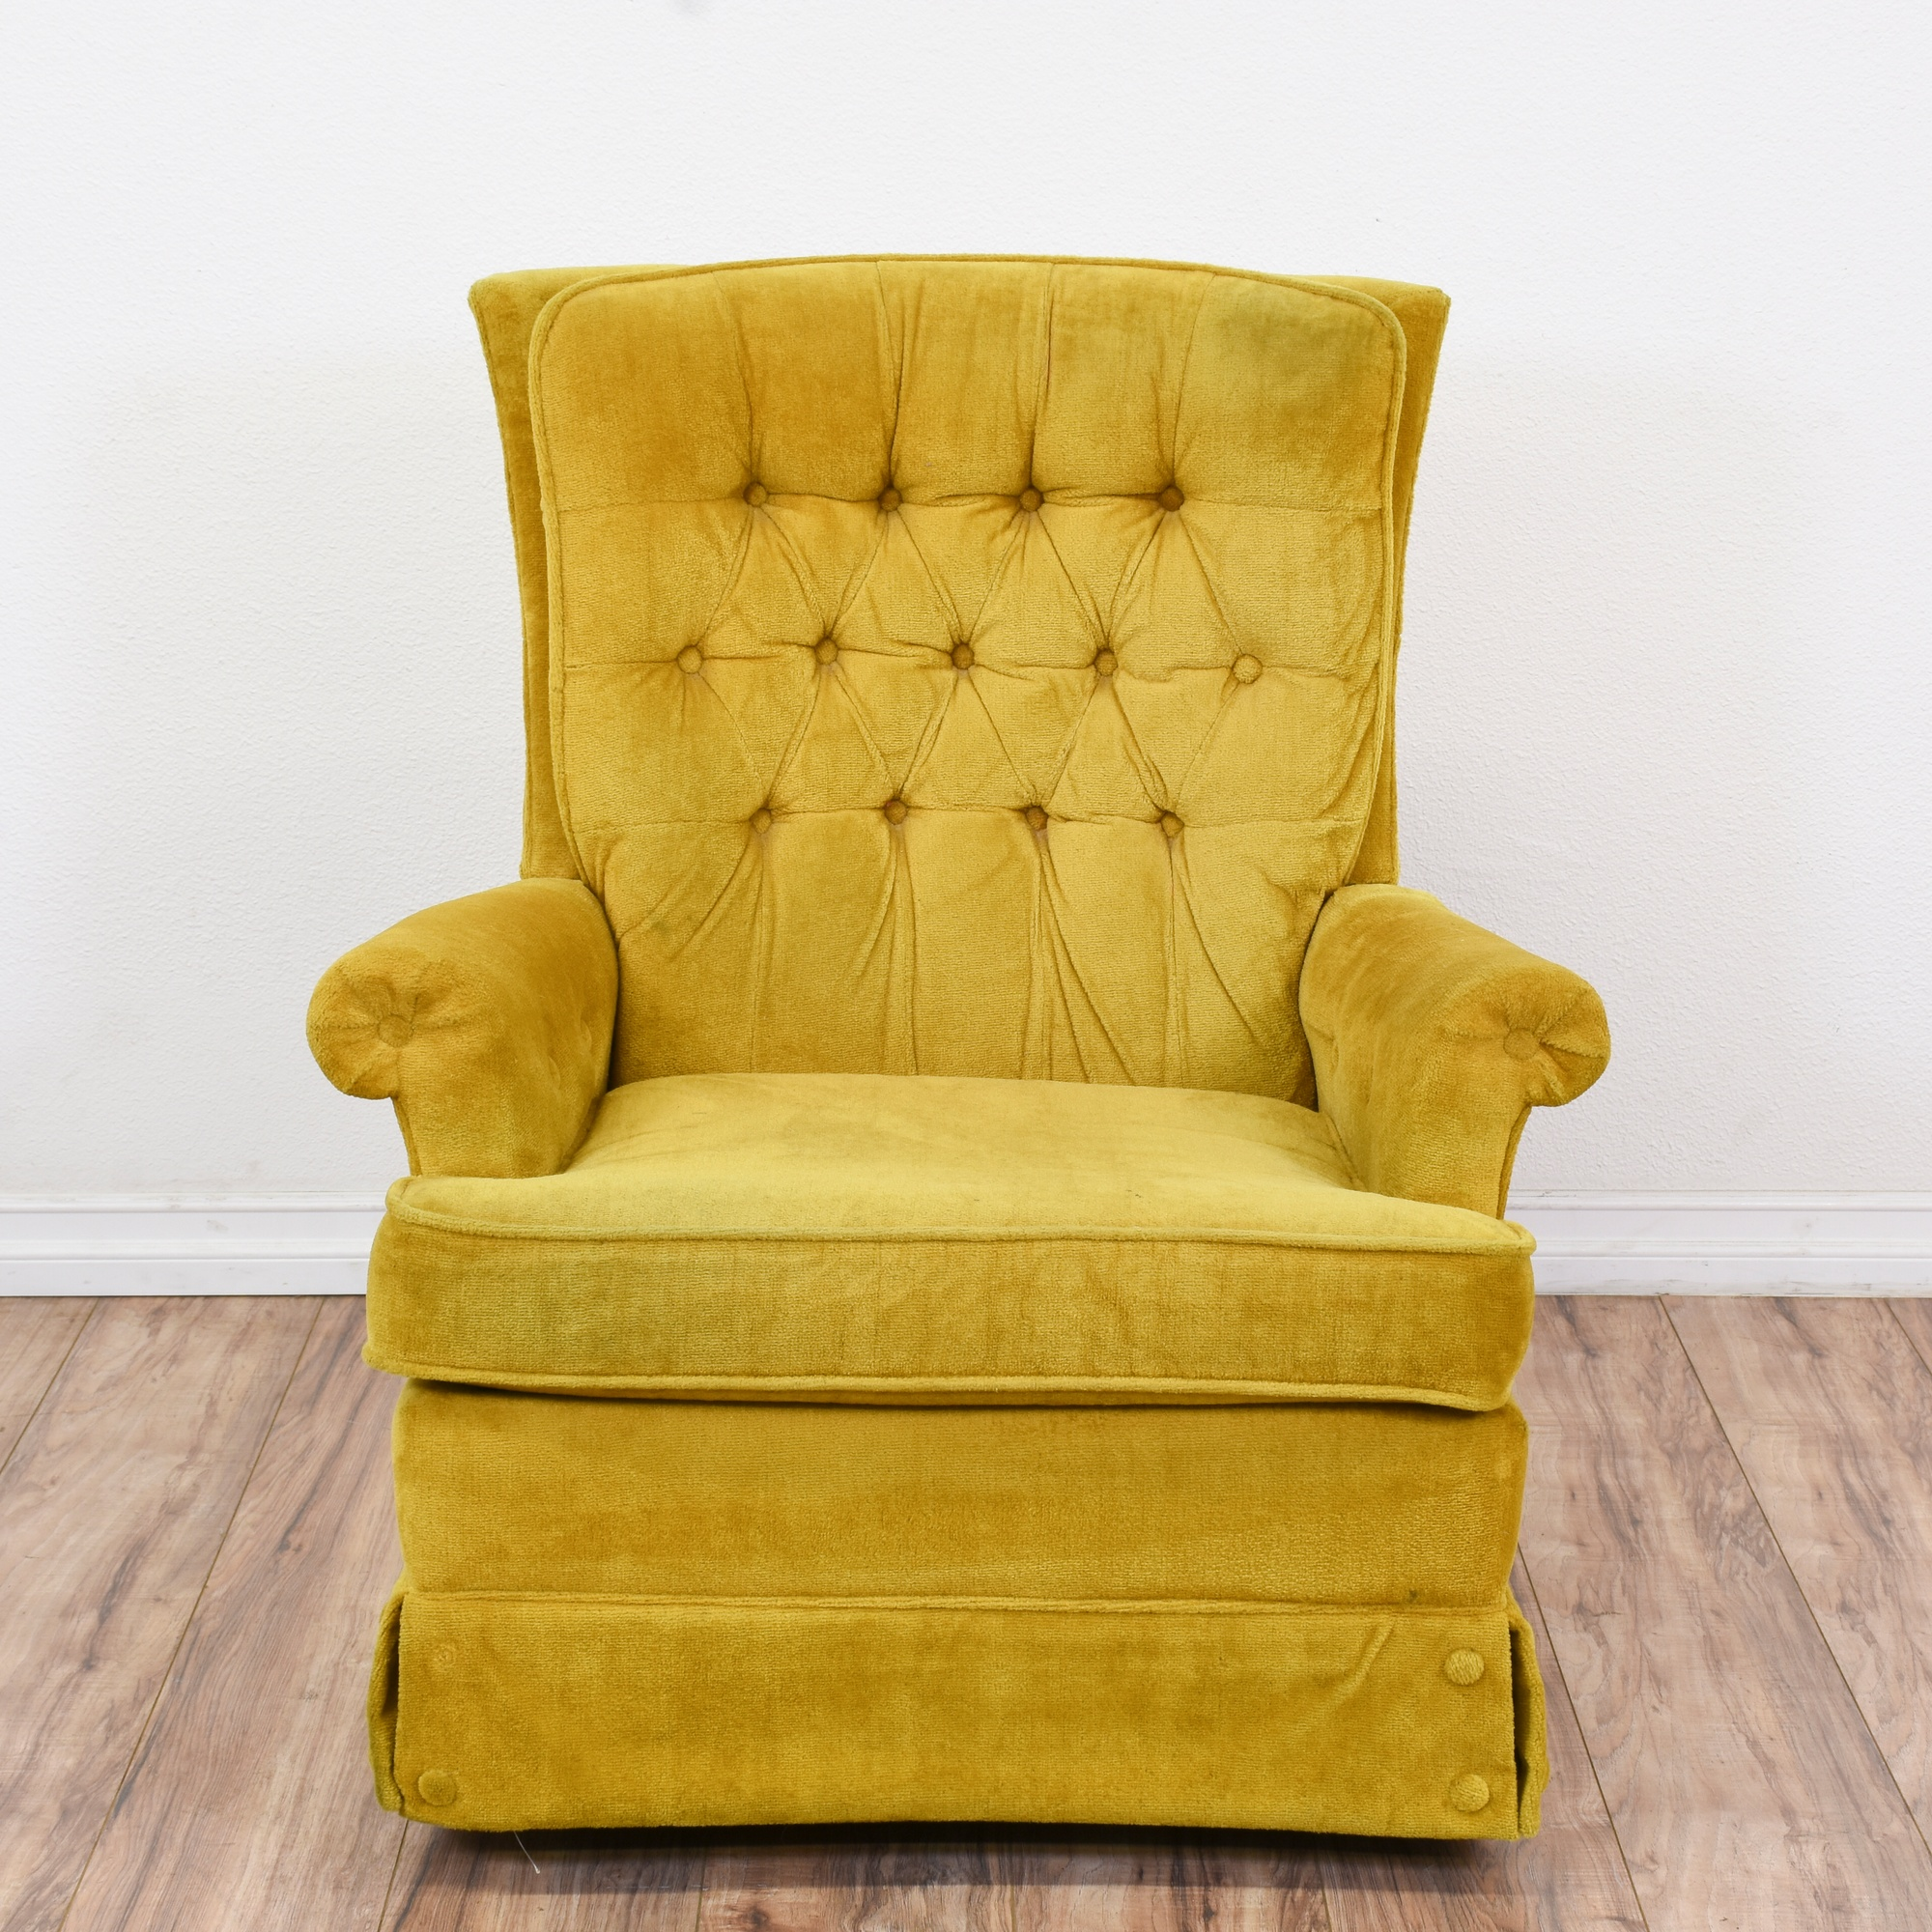 Vintage Yellow Velvet Tufted Armchair W/ Skirt | Loveseat Vintage Furniture  San Diego